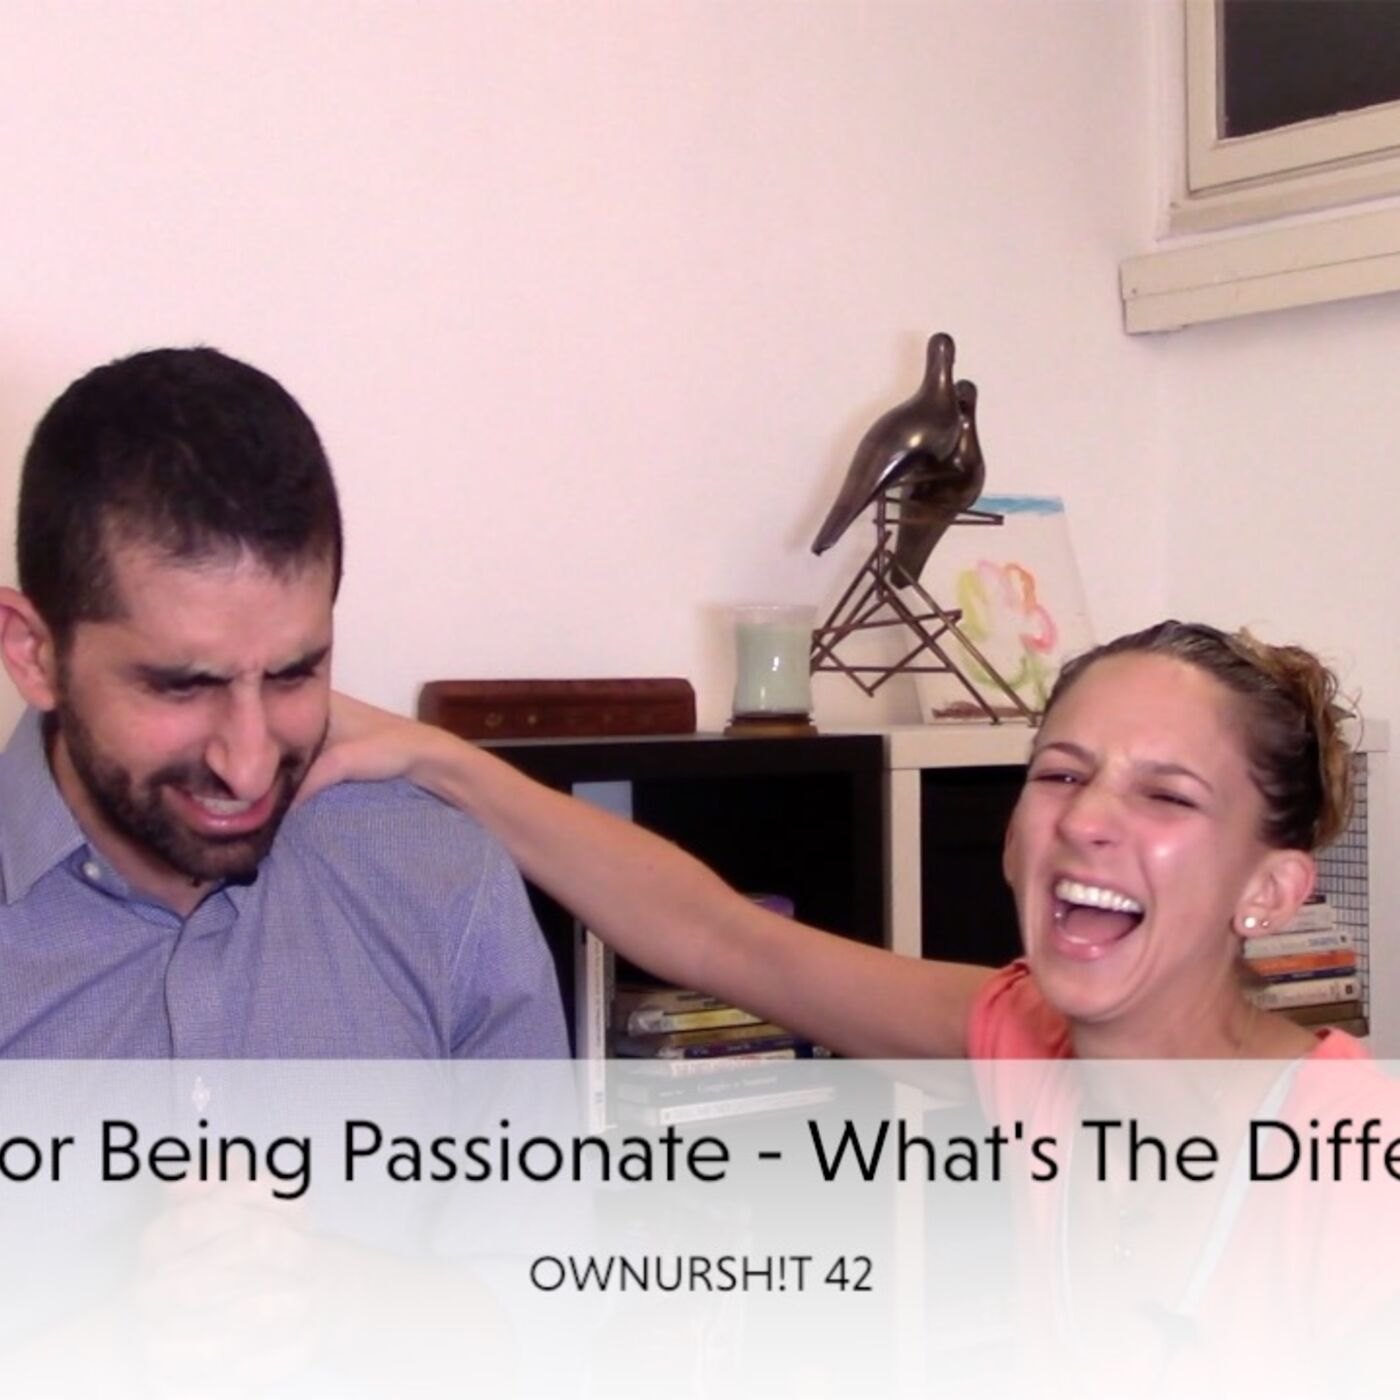 OWNURSH!T 42 - Yelling and Being Passionate - What's the difference?